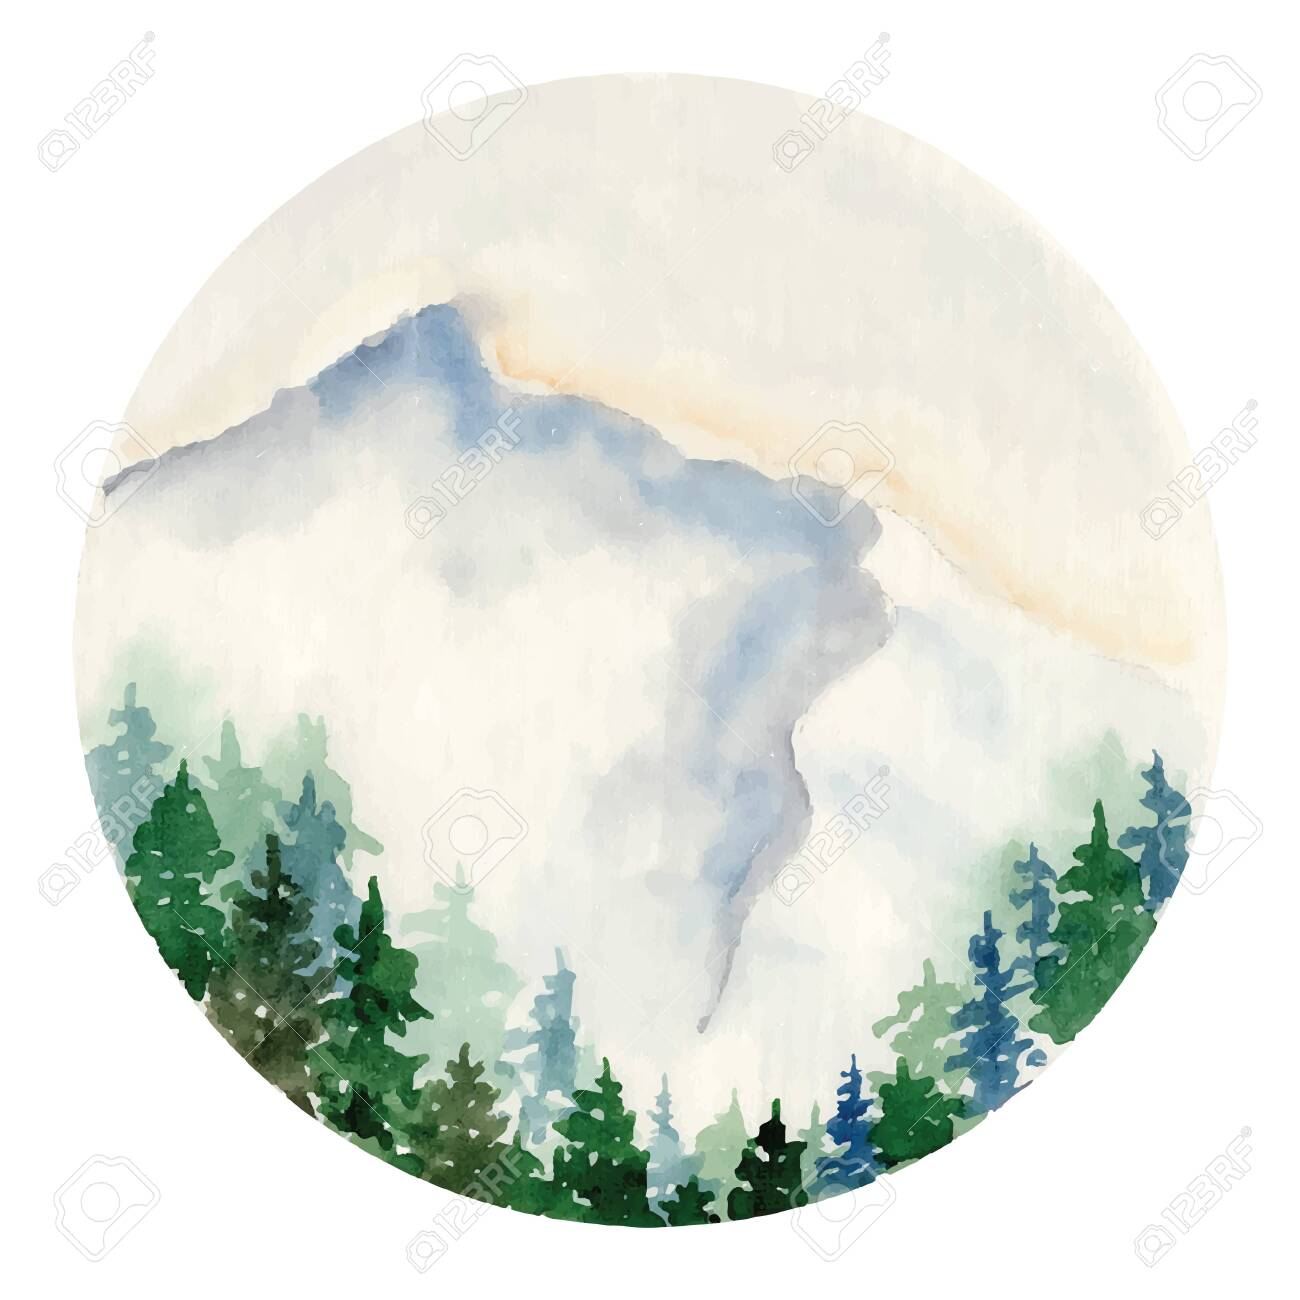 Watercolor Landscape With Pine And Fir Trees And Mountains Abstract Royalty Free Cliparts Vectors And Stock Illustration Image 136982564